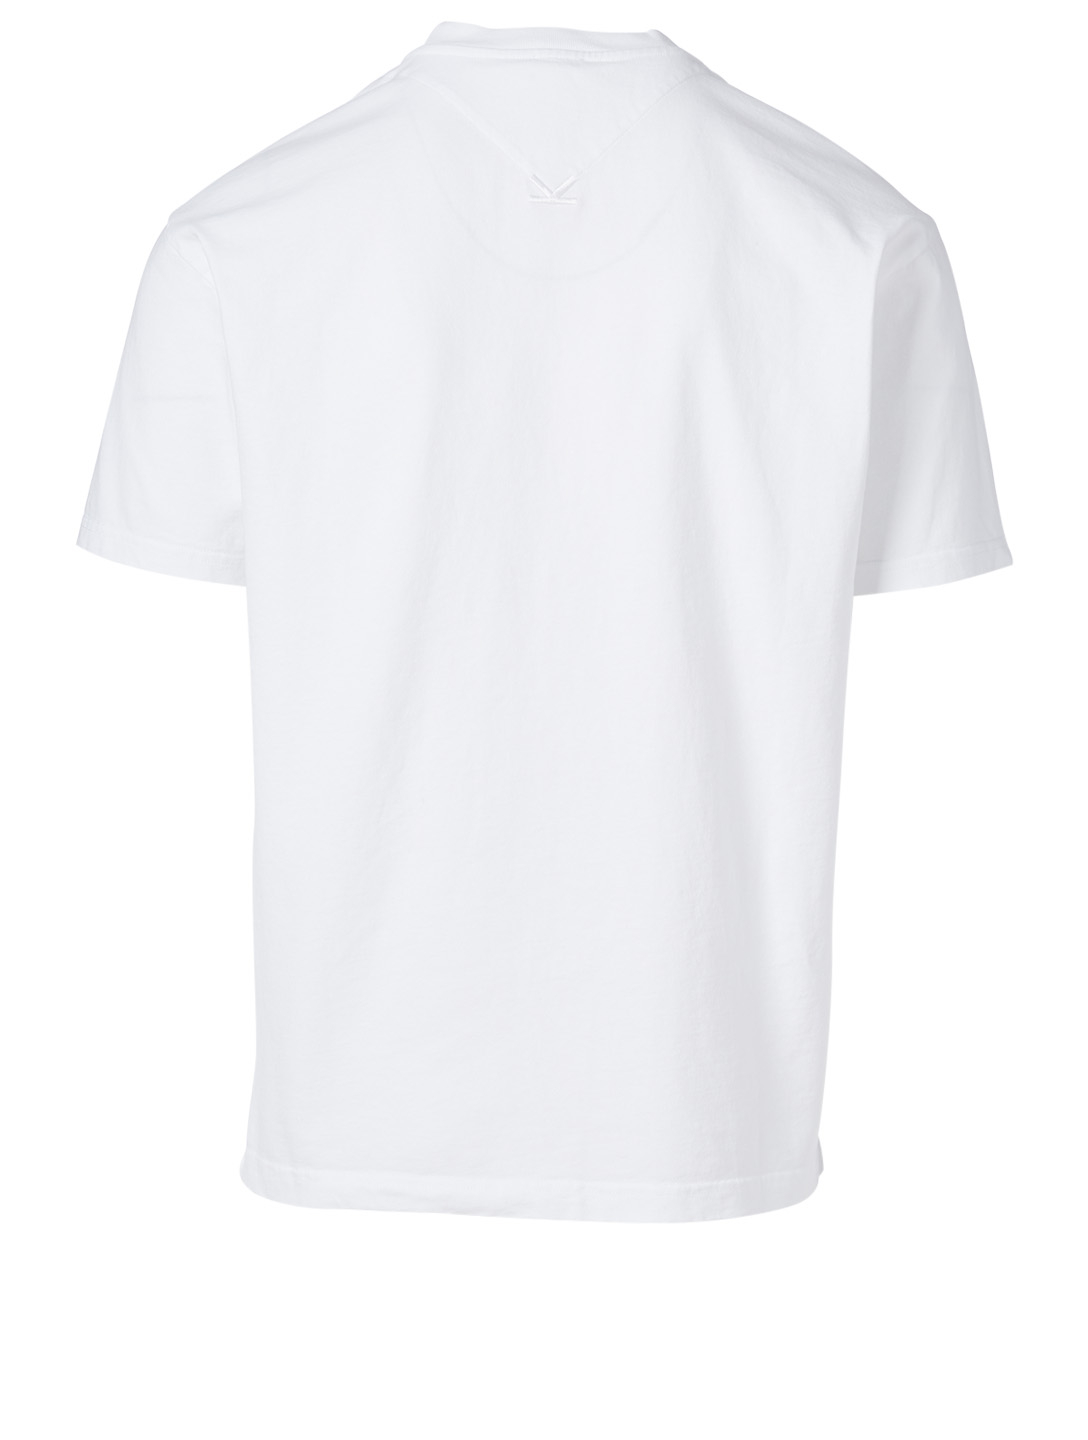 KENZO Compass Cotton T-Shirt Men's White